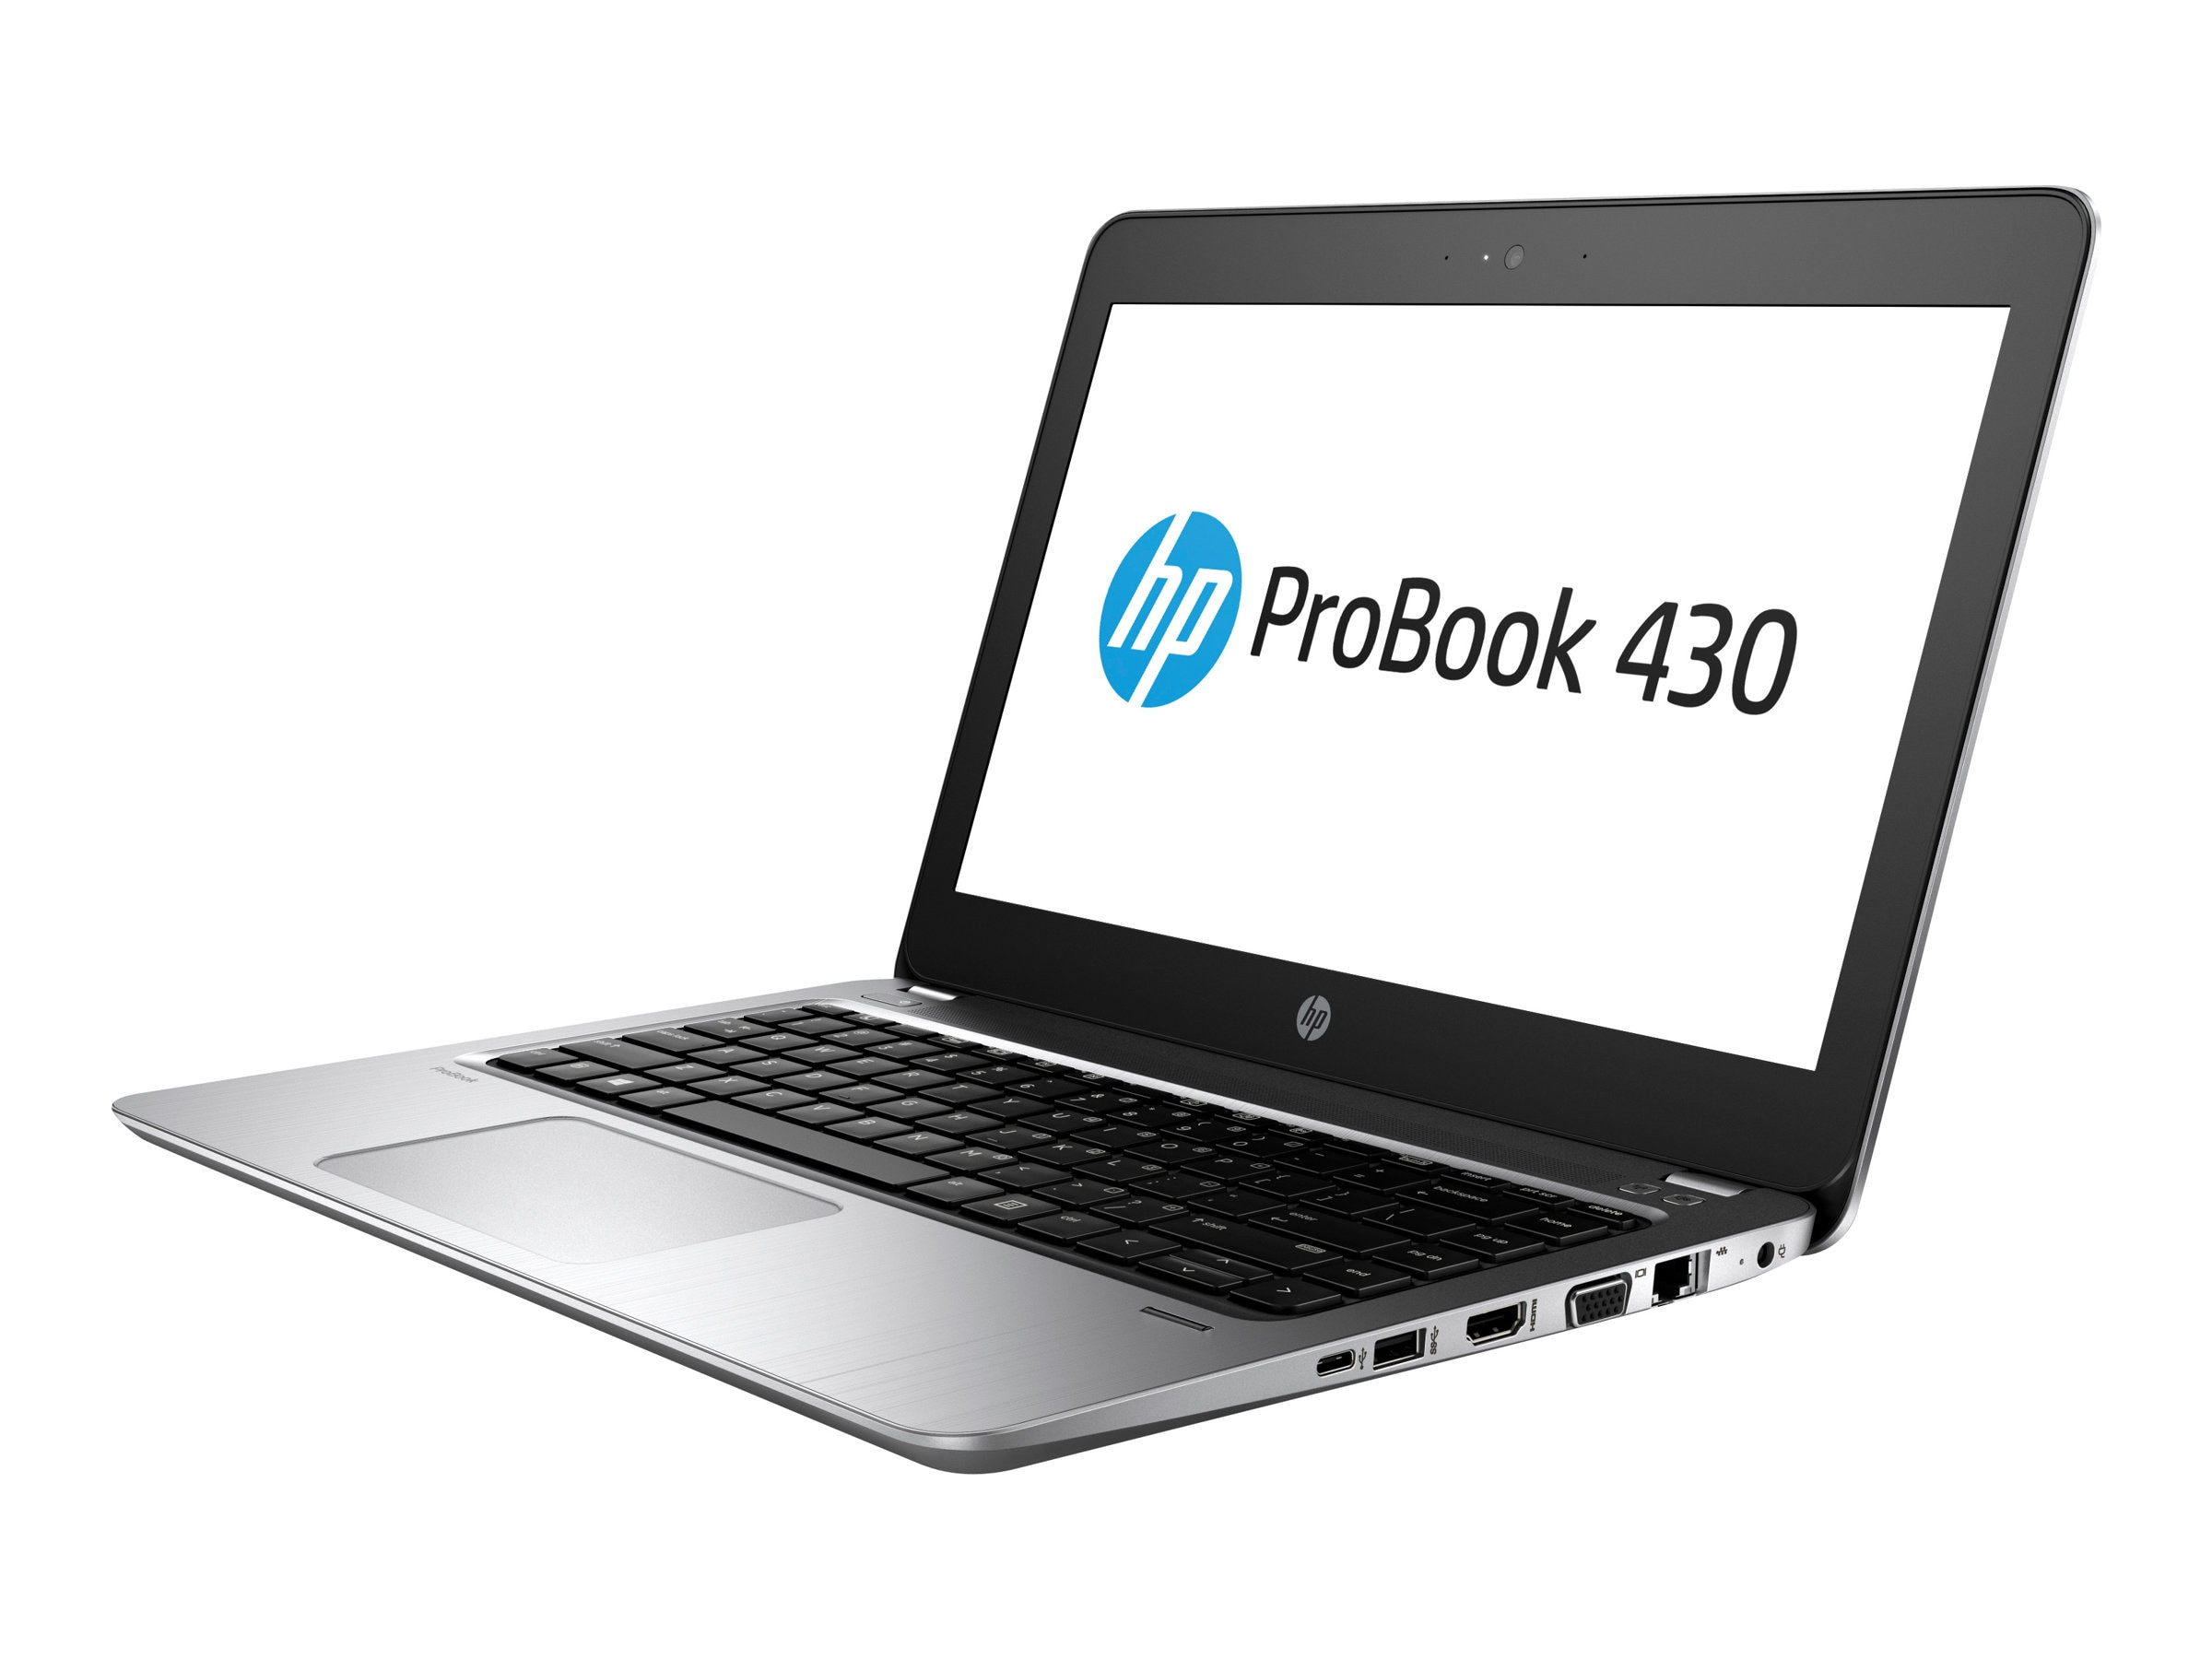 HP ProBook 430 G4 2.7GHz Core i7 13.3in display, Y9G06UT#ABA